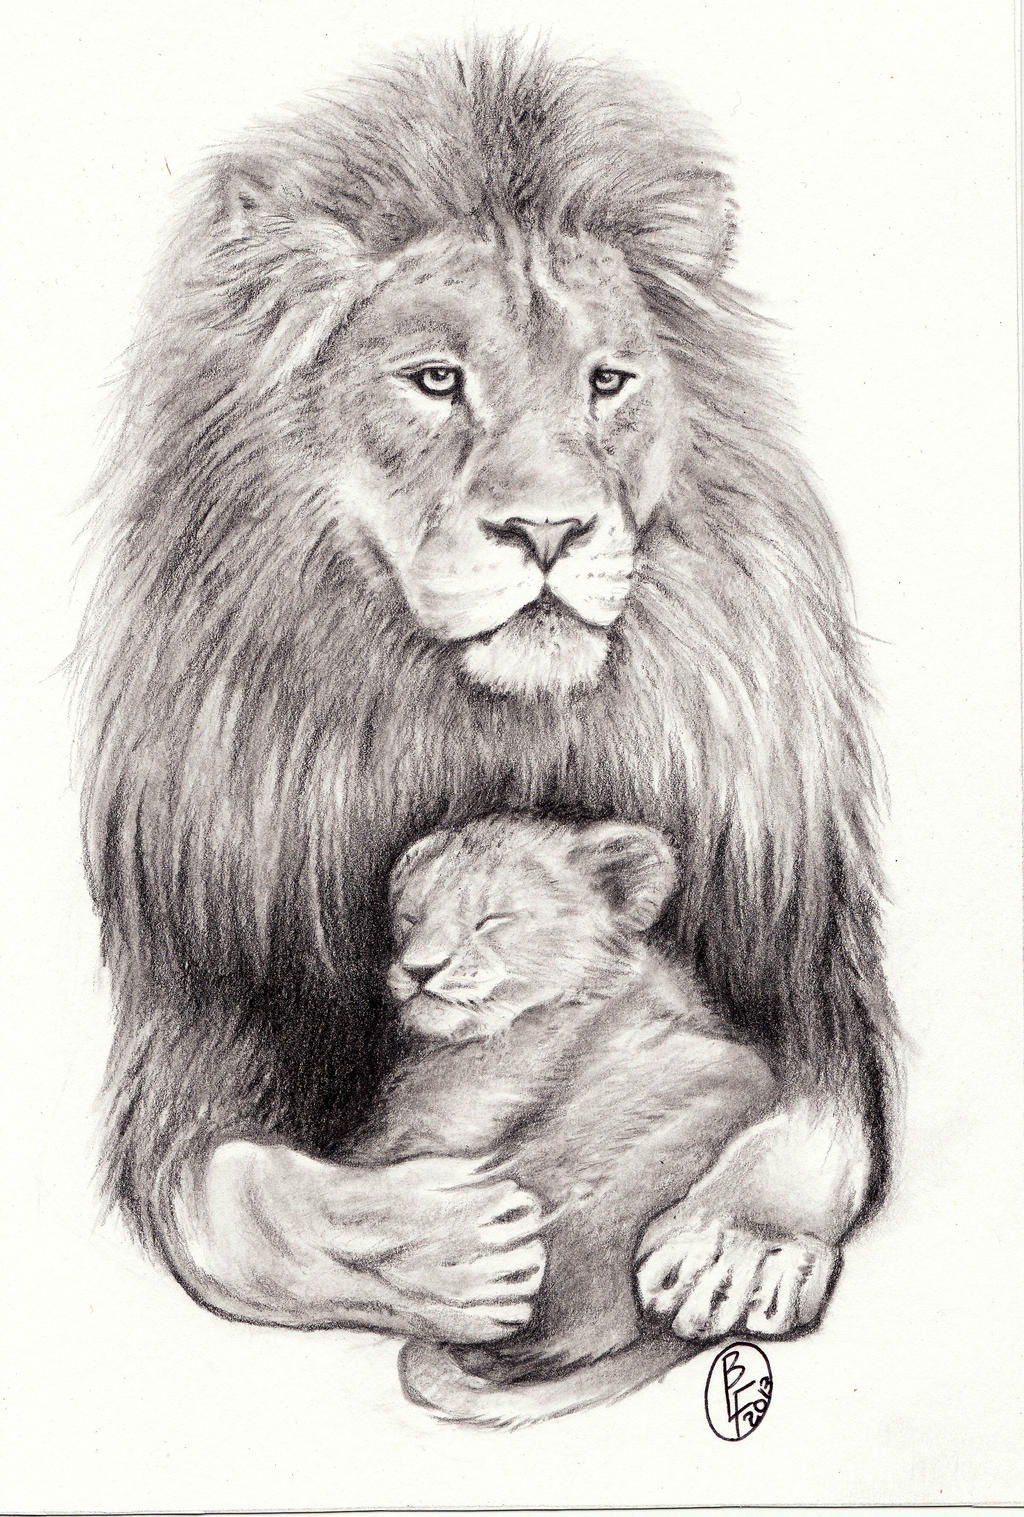 Tattoos on pinterest military tattoos lion tattoo and lion for Lion and cub tattoo